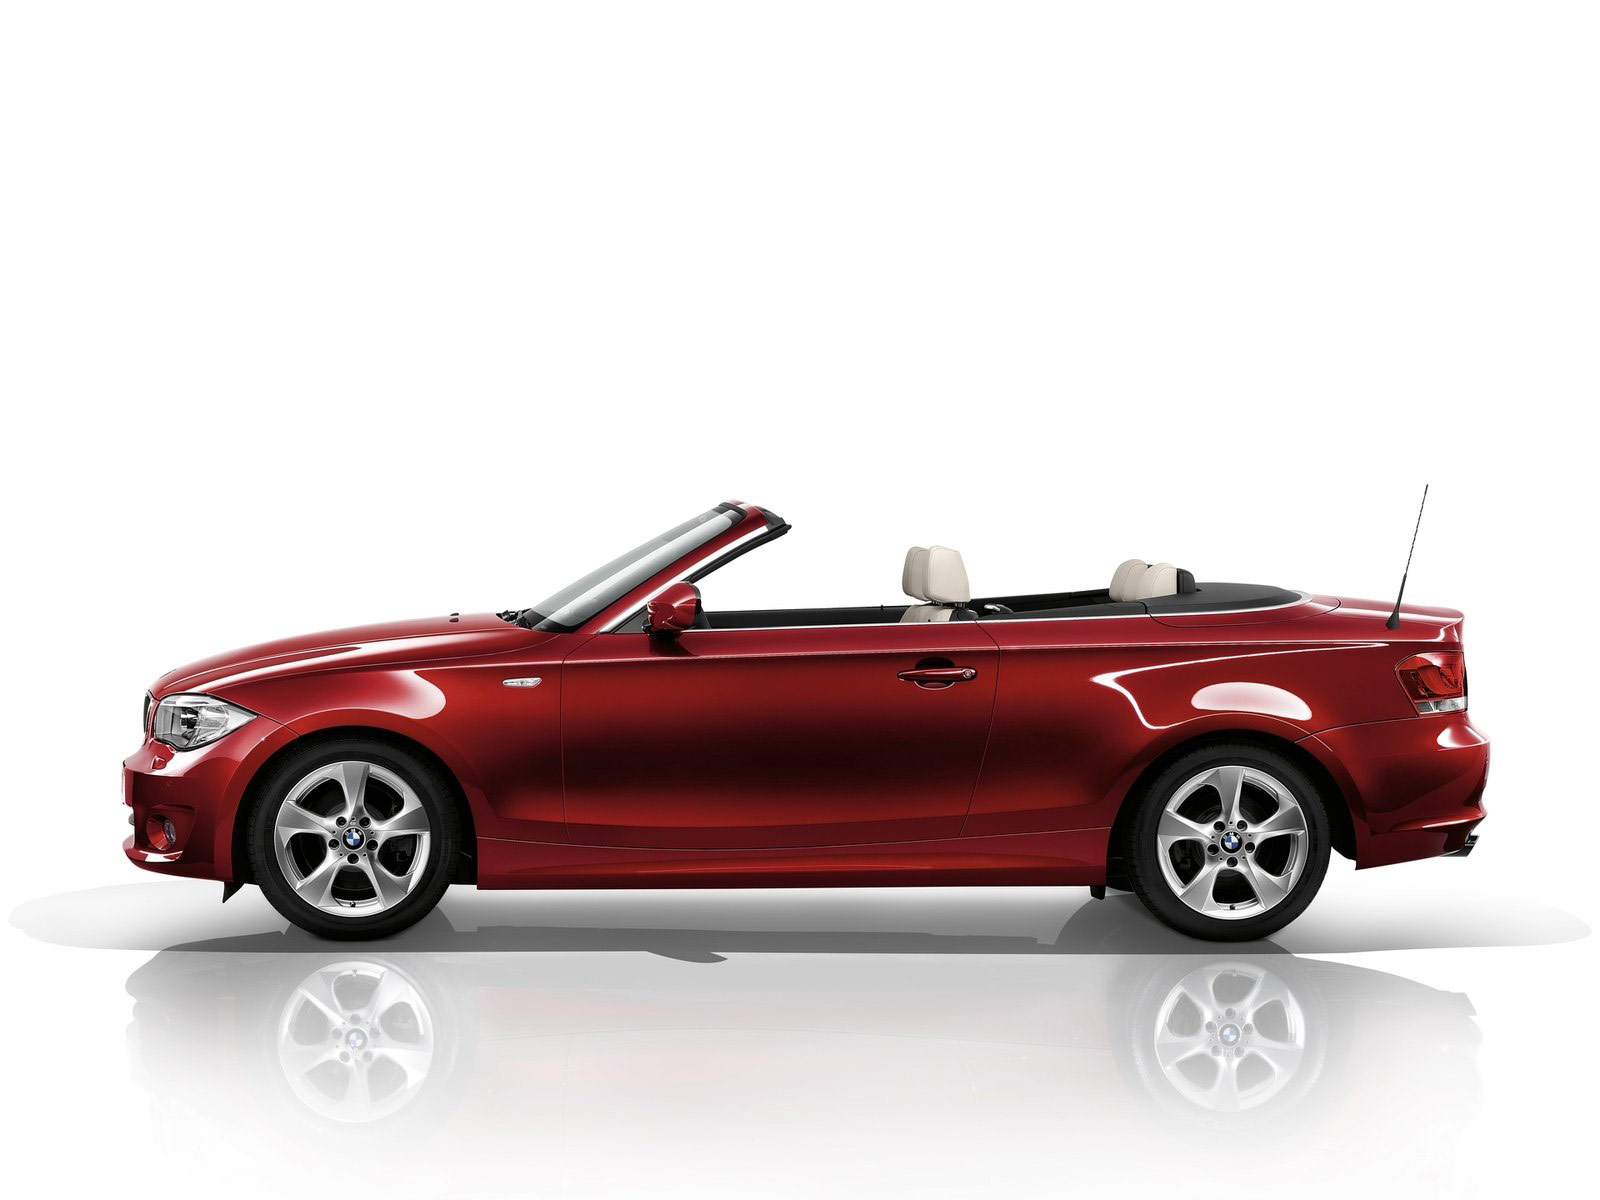 2012 BMW 1-Series Convertible car accident lawyers info